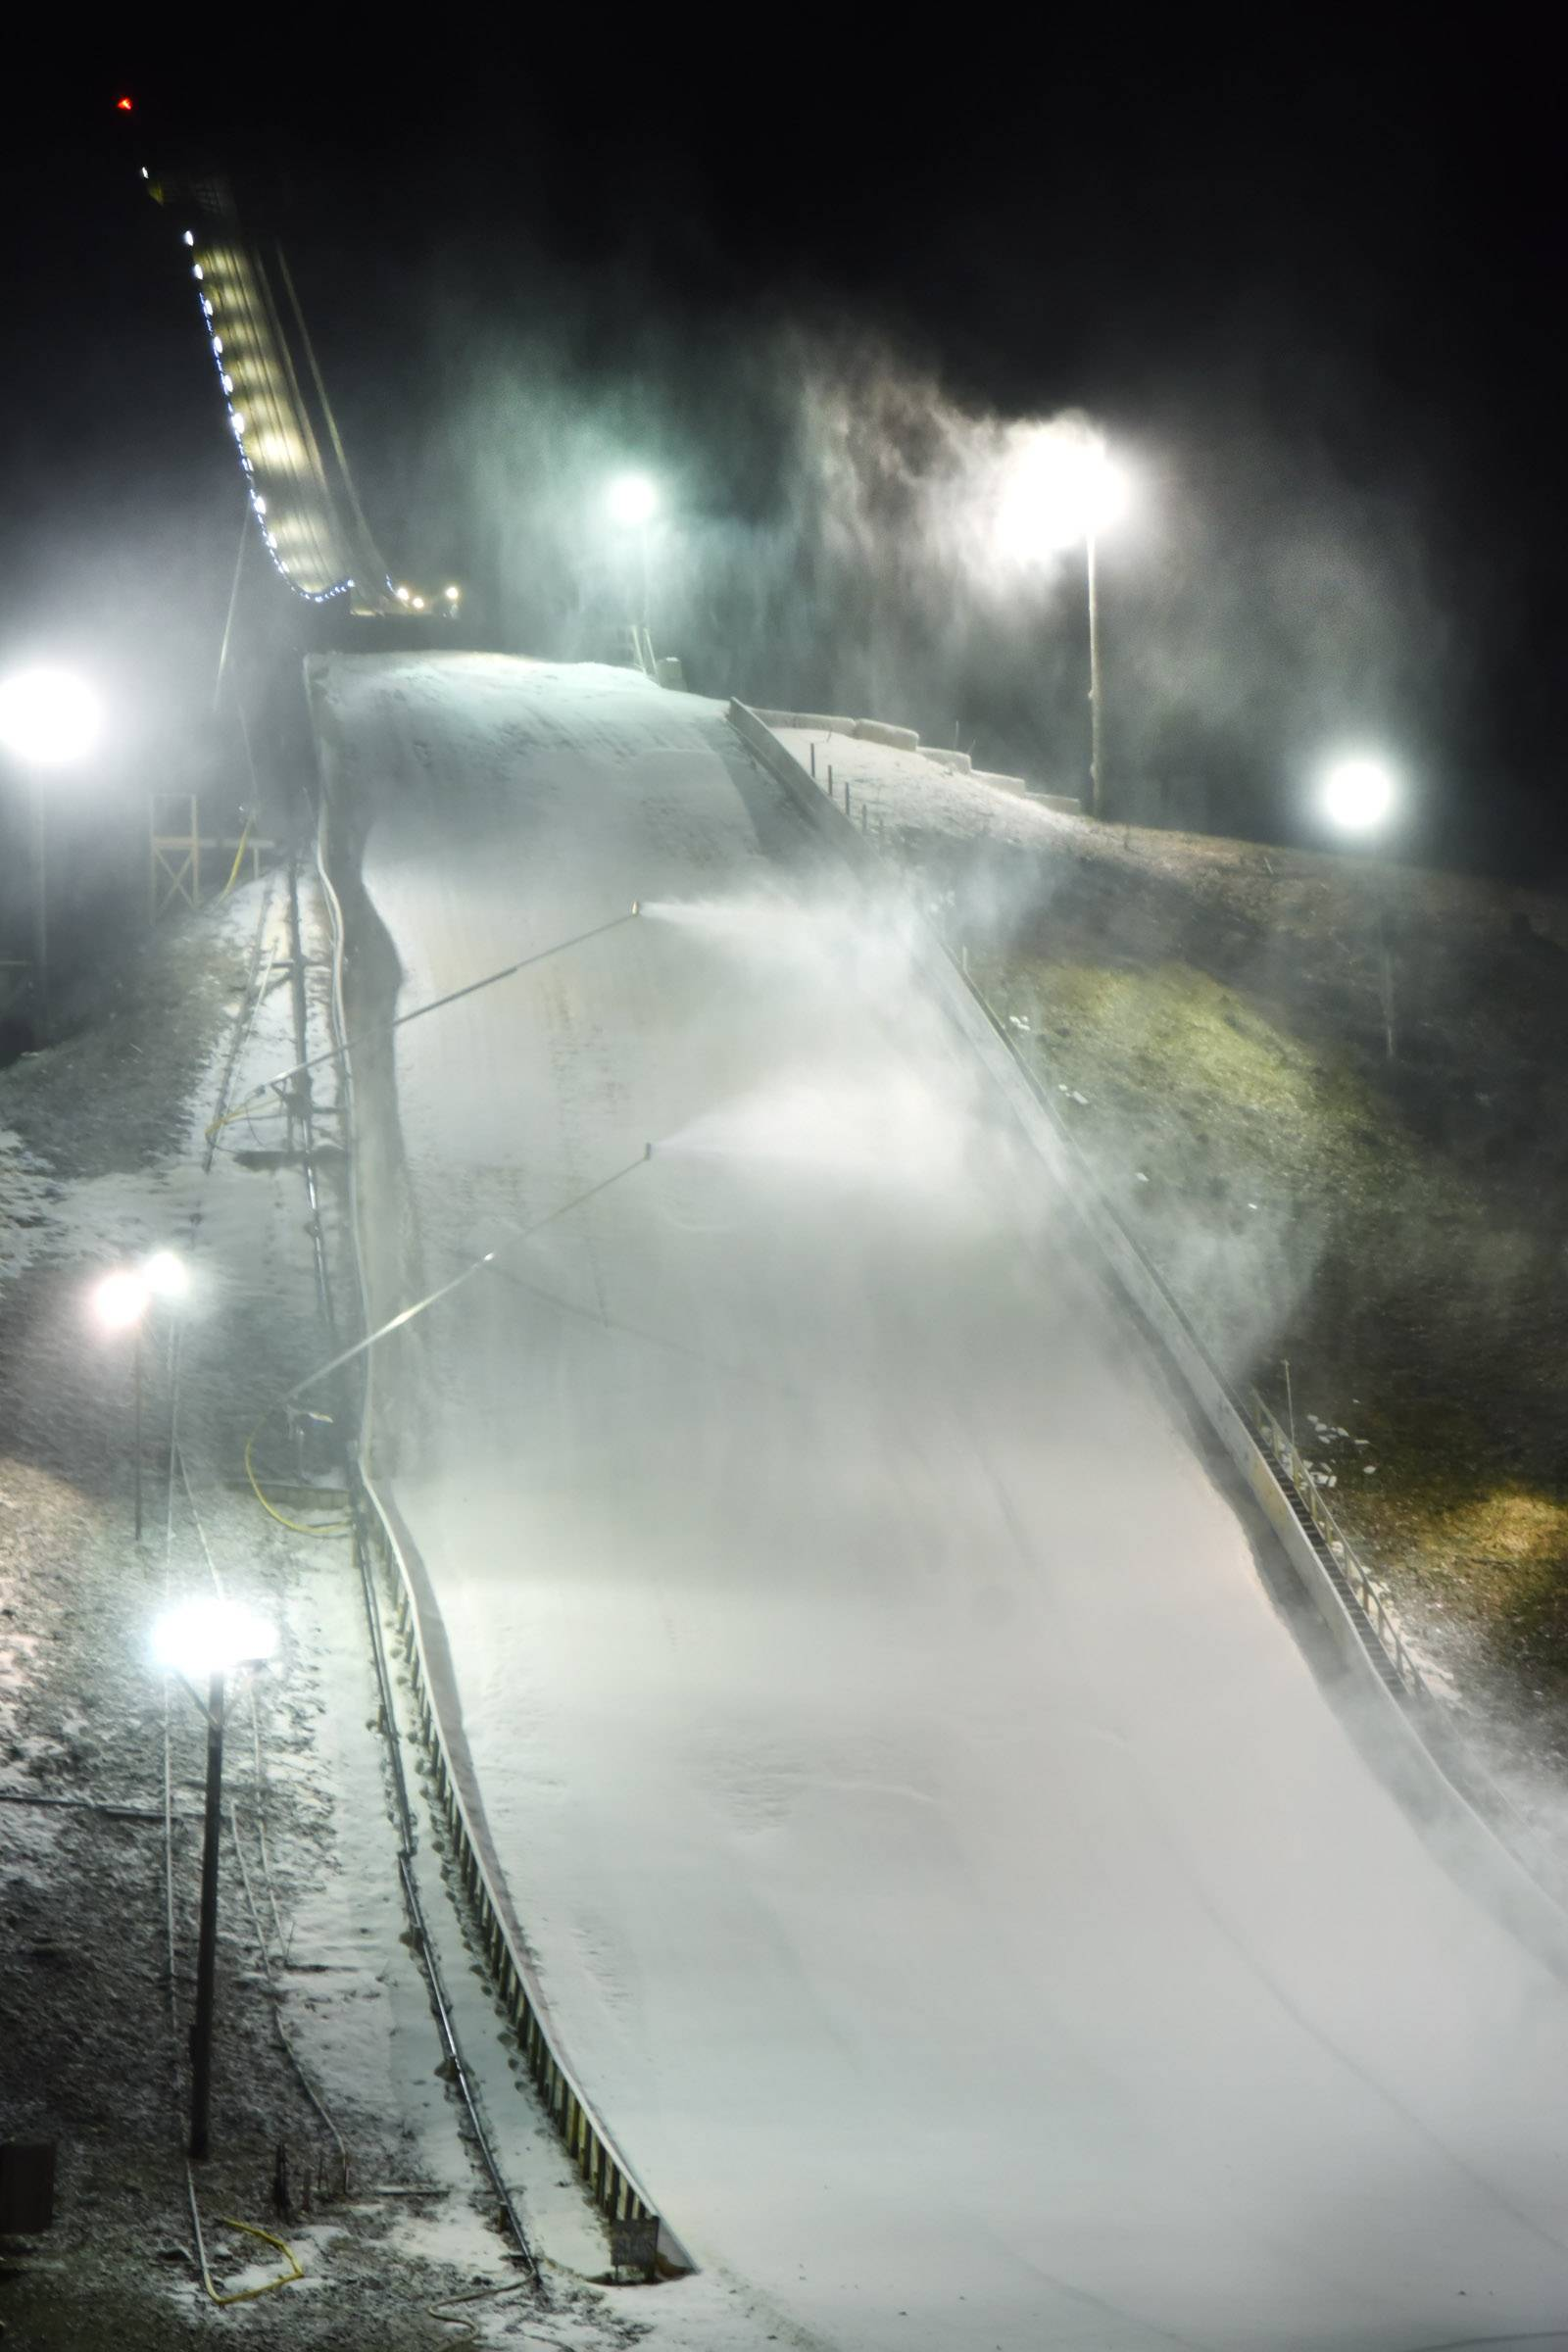 Several snow-making machines work to cover the surface of the 70-meter hill at the Norge Ski Jump in preparation for last year's International Winter Tournament in Fox River Grove. About 50 professional jumpers from Finland, Norway, Slovenia and the U.S. are set to compete this Saturday and Sunday.